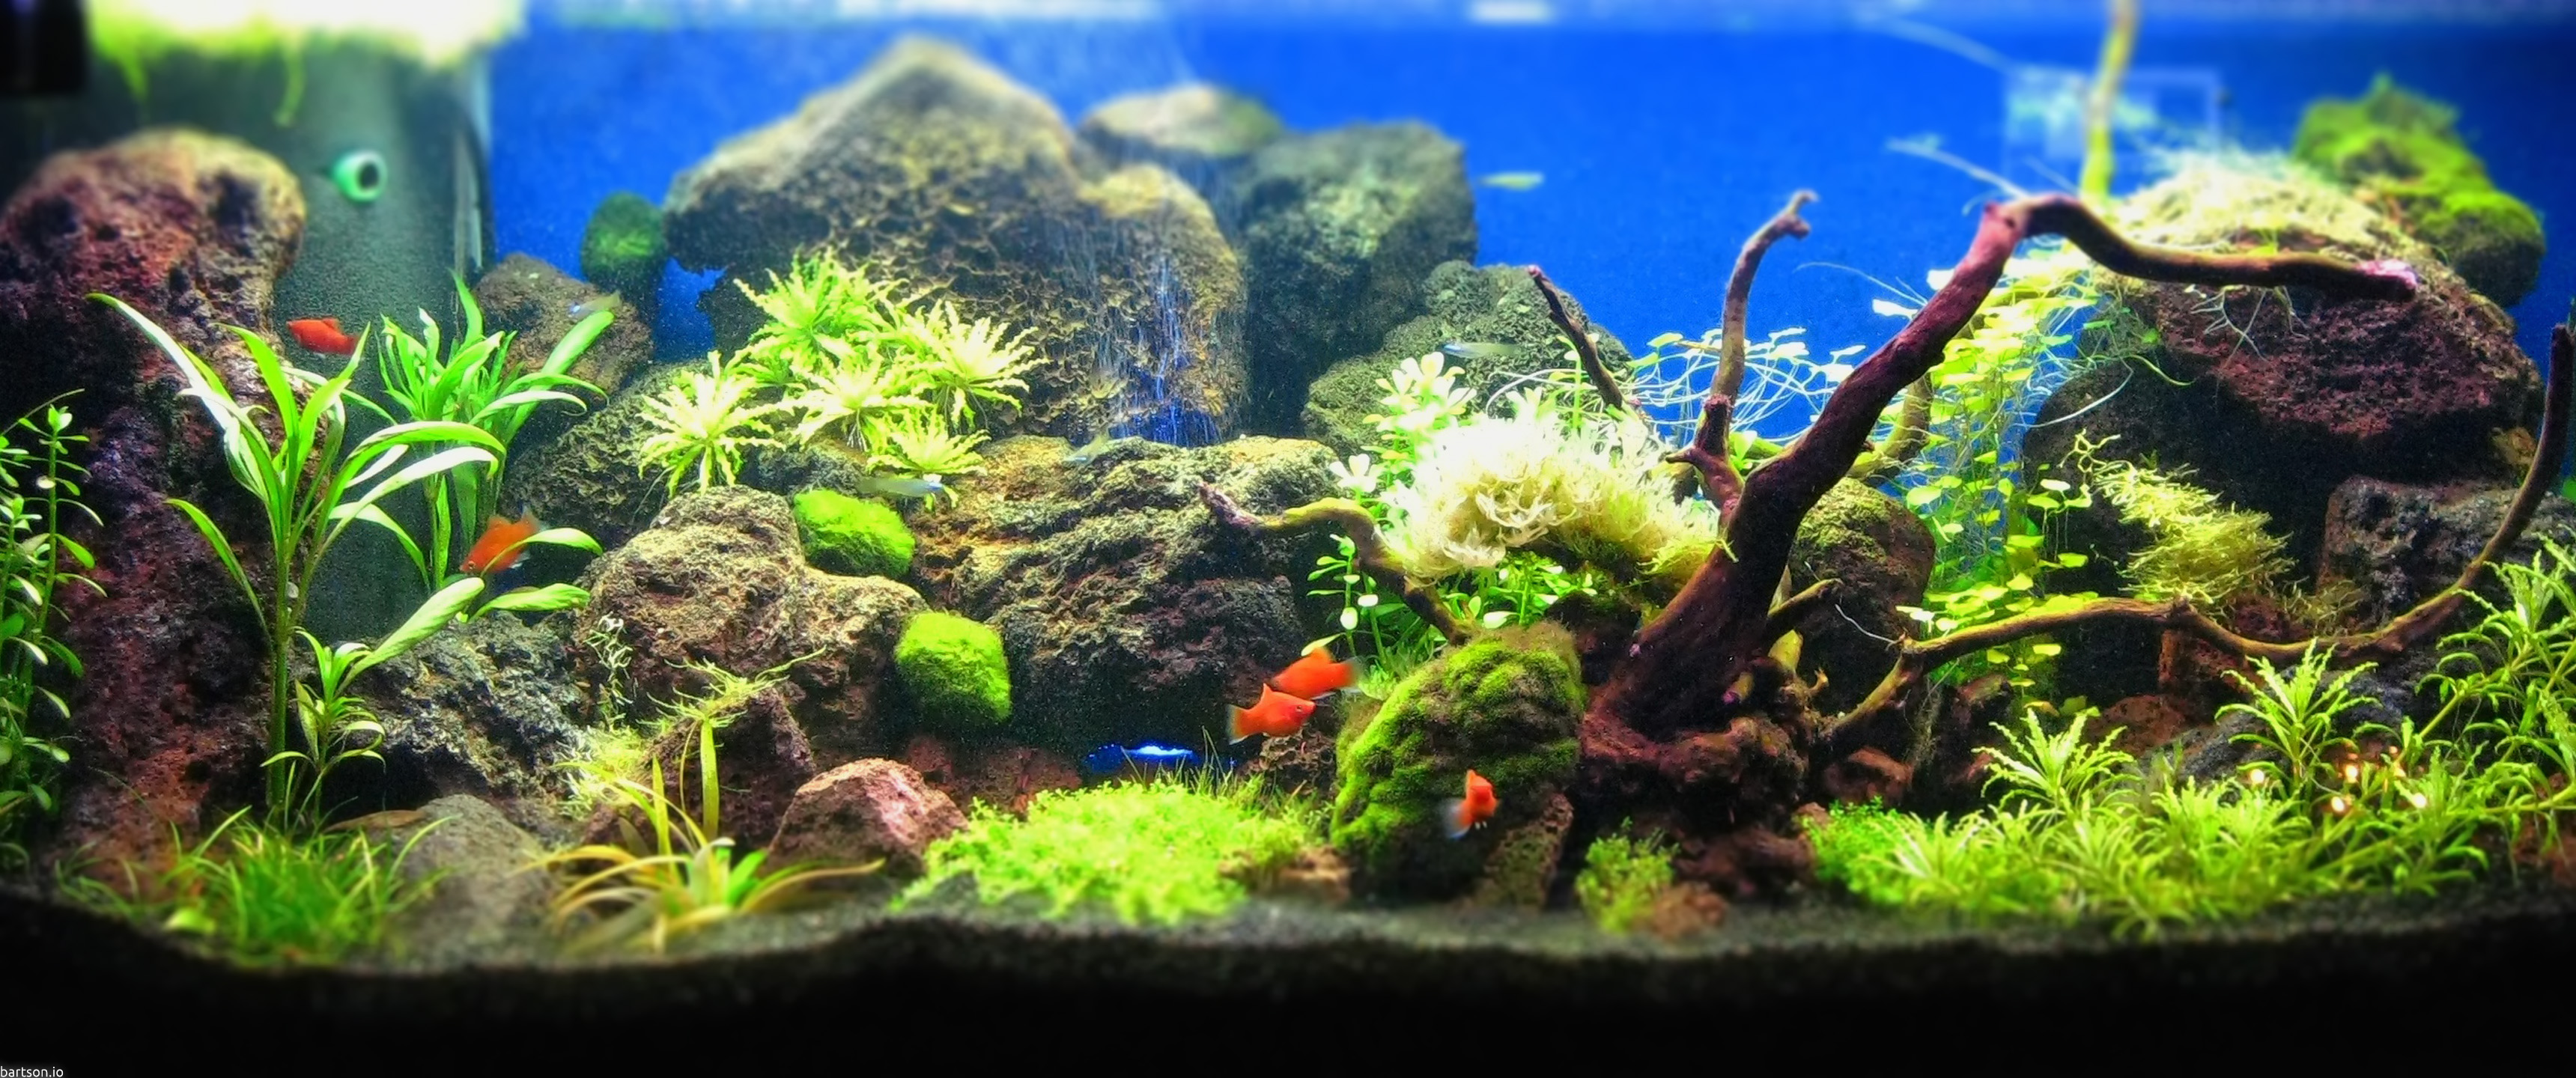 Hd wallpaper ultra wide - Aquascape 21 9 Wallpaper F R Ultrawide Monitore